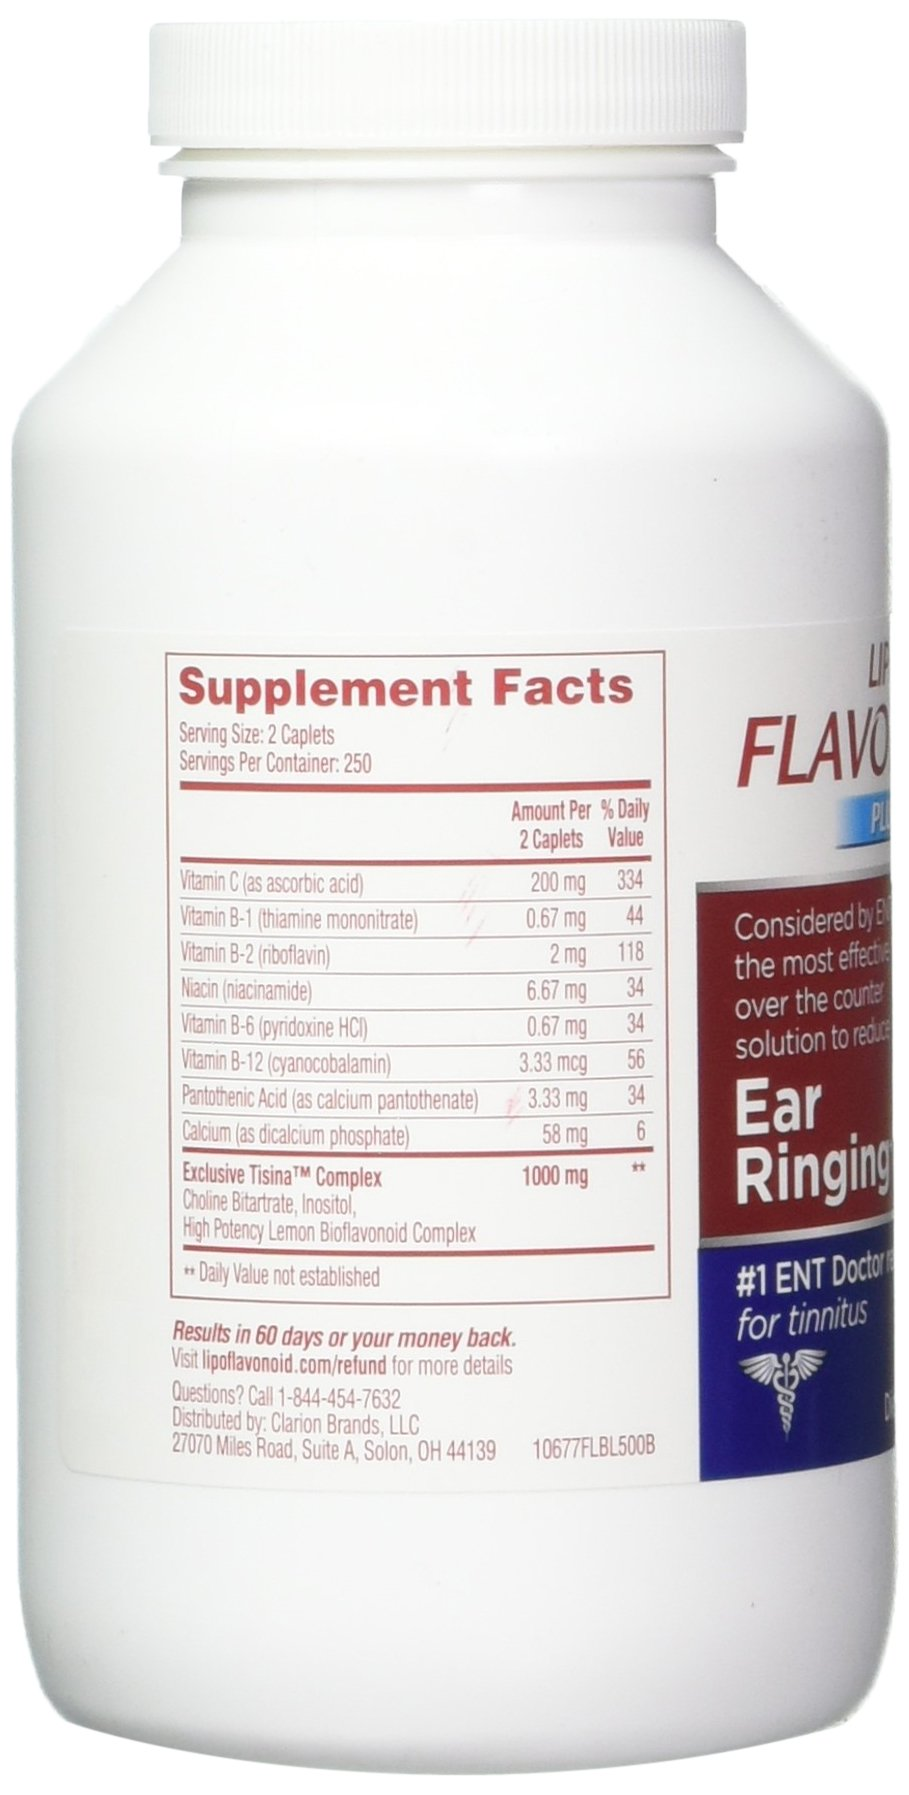 Lipo-Flavonoid Plus Ear Health Supplement | Most Effective Over the Counter Solution to Reduce Ear Ringing| #1 ENT Doctor Recommended for Tinnitus | 500 Caplets by Lipo-Flavonoid (Image #5)